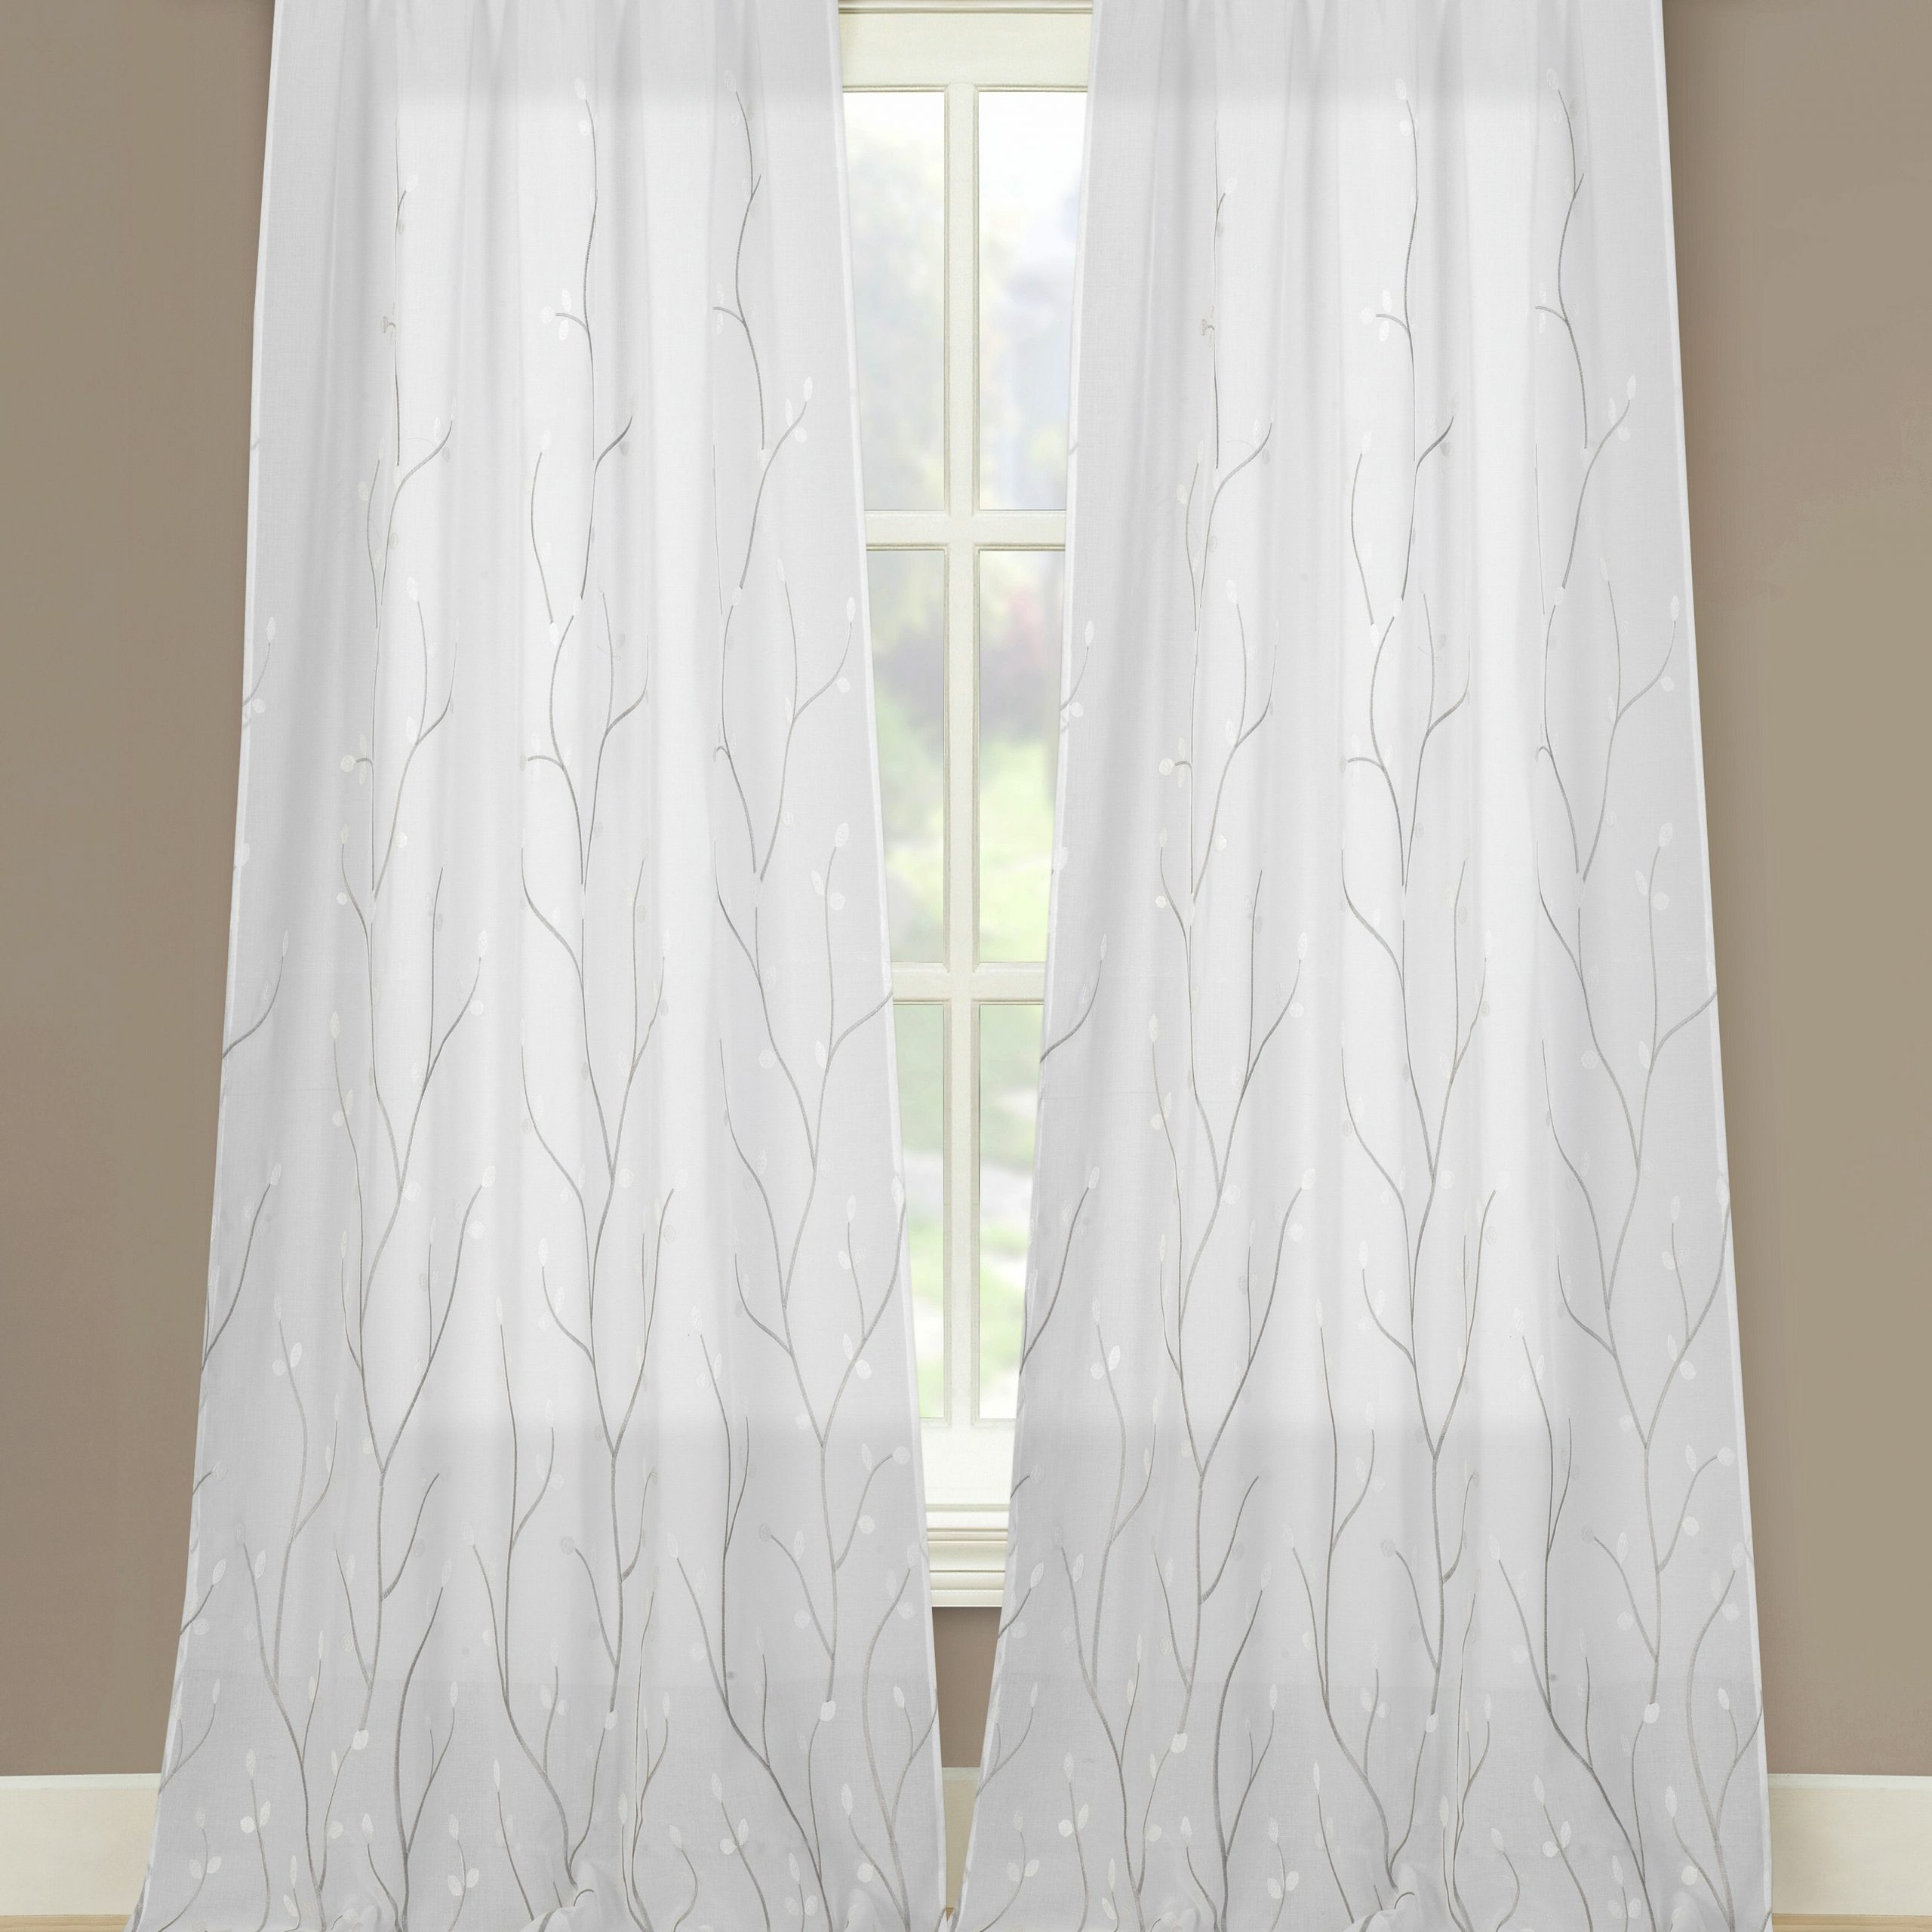 Latest Osuna Vine Embroidered Sheer Curtain Panels With Regard To Kida Embroidered Sheer Curtain Panels (View 8 of 20)